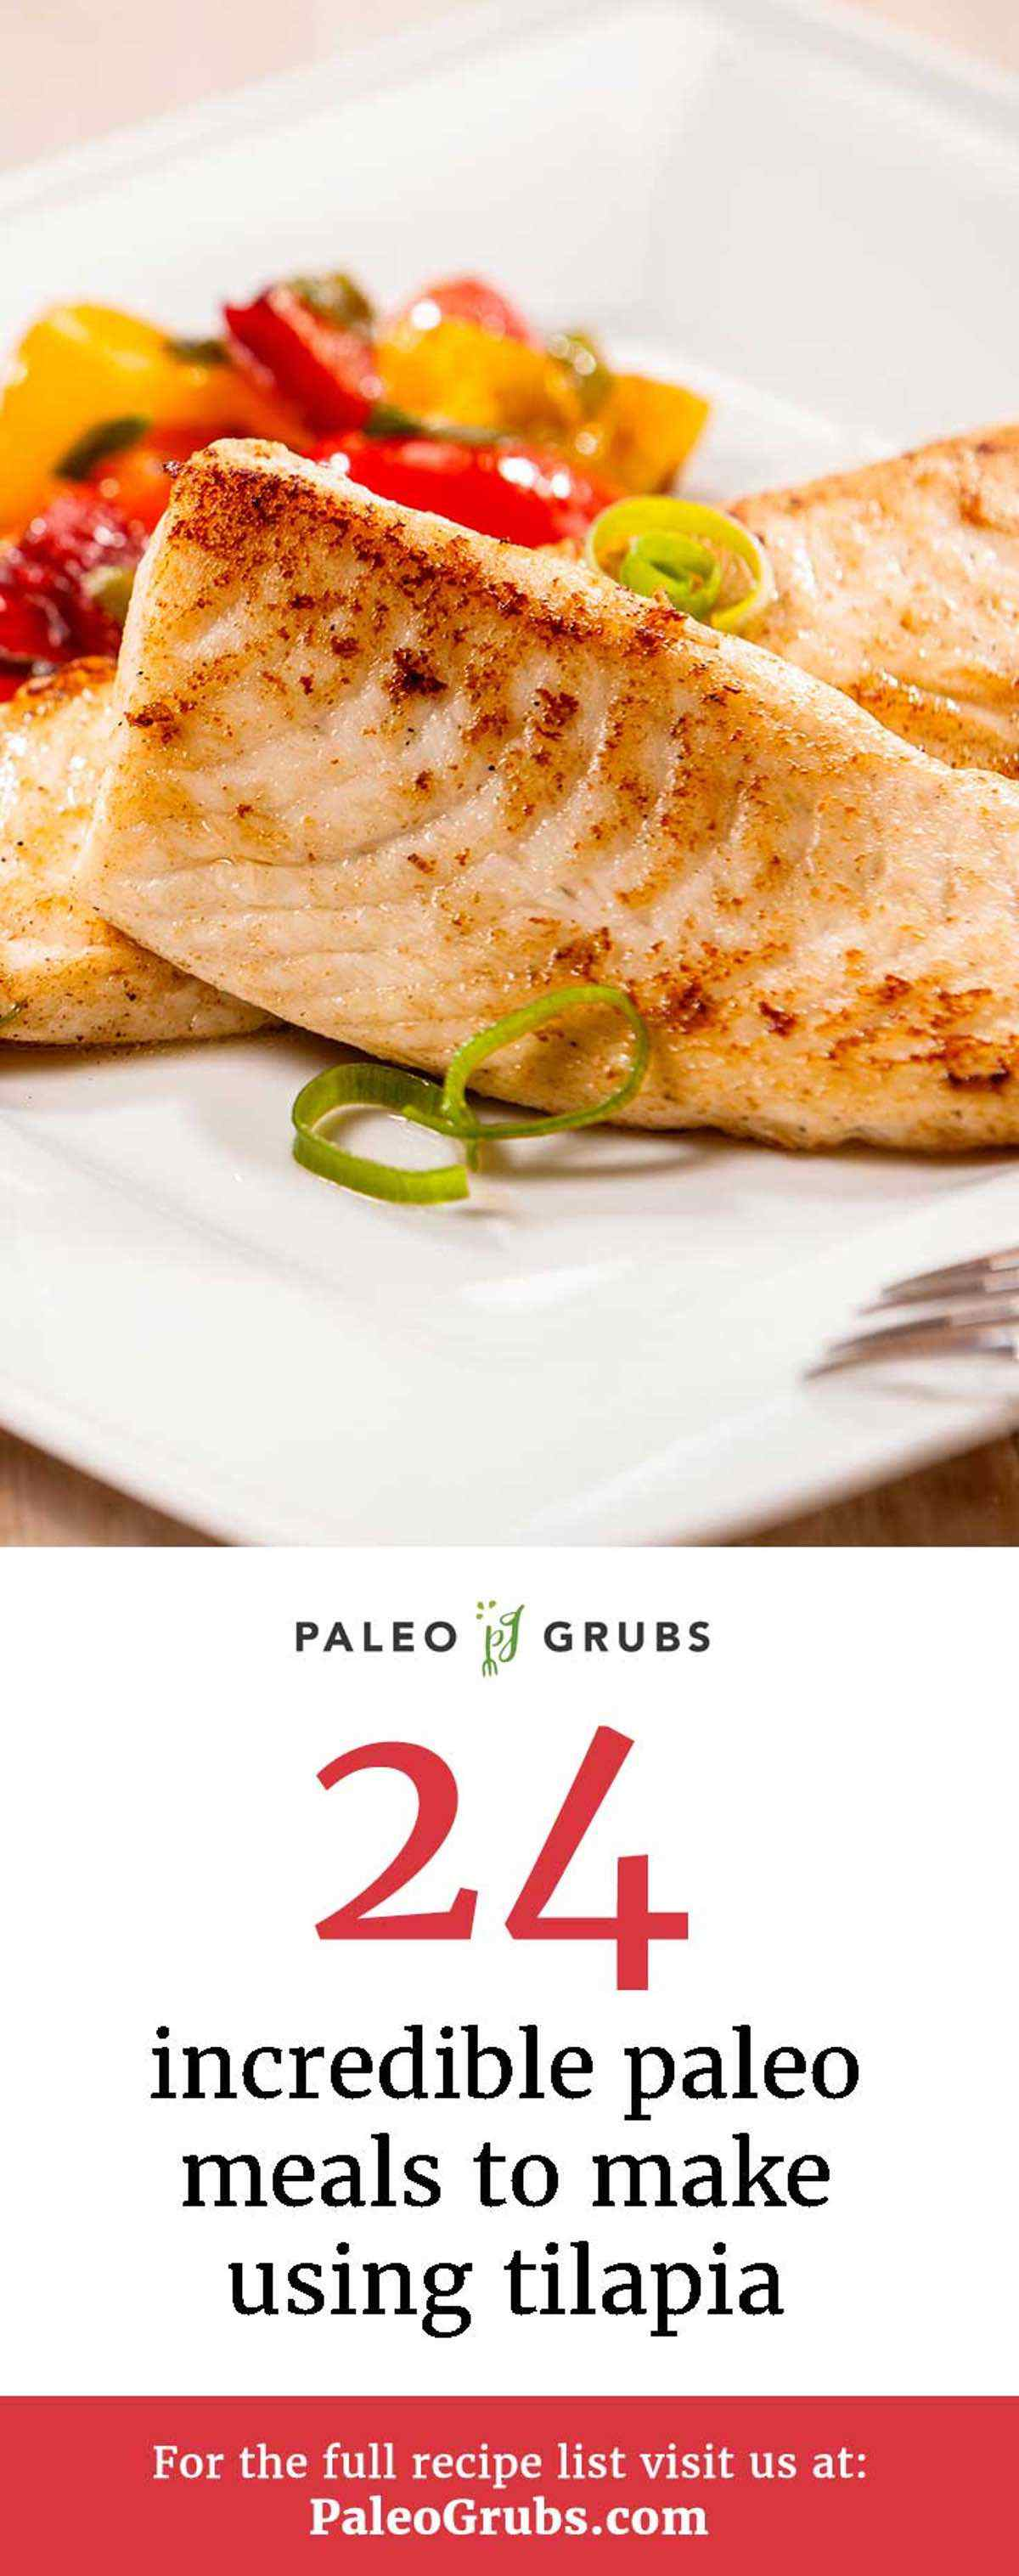 These tilapia recipes really get my mouth watering. They are fun to try and easy to make even if you are not used to cooking fish.